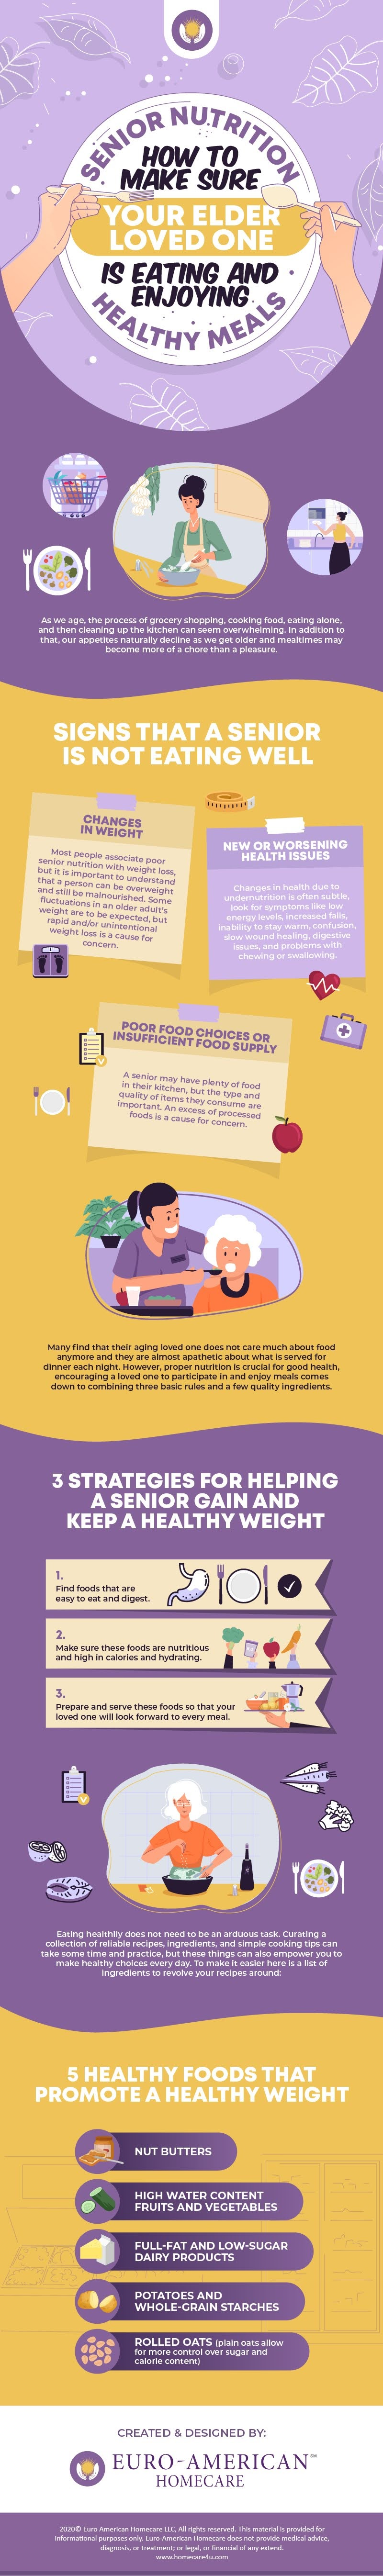 senior-nutrition-how-to-make-sure-your-elder-loved-one-is-eating-and-enjoying-healthy-meals-infographic